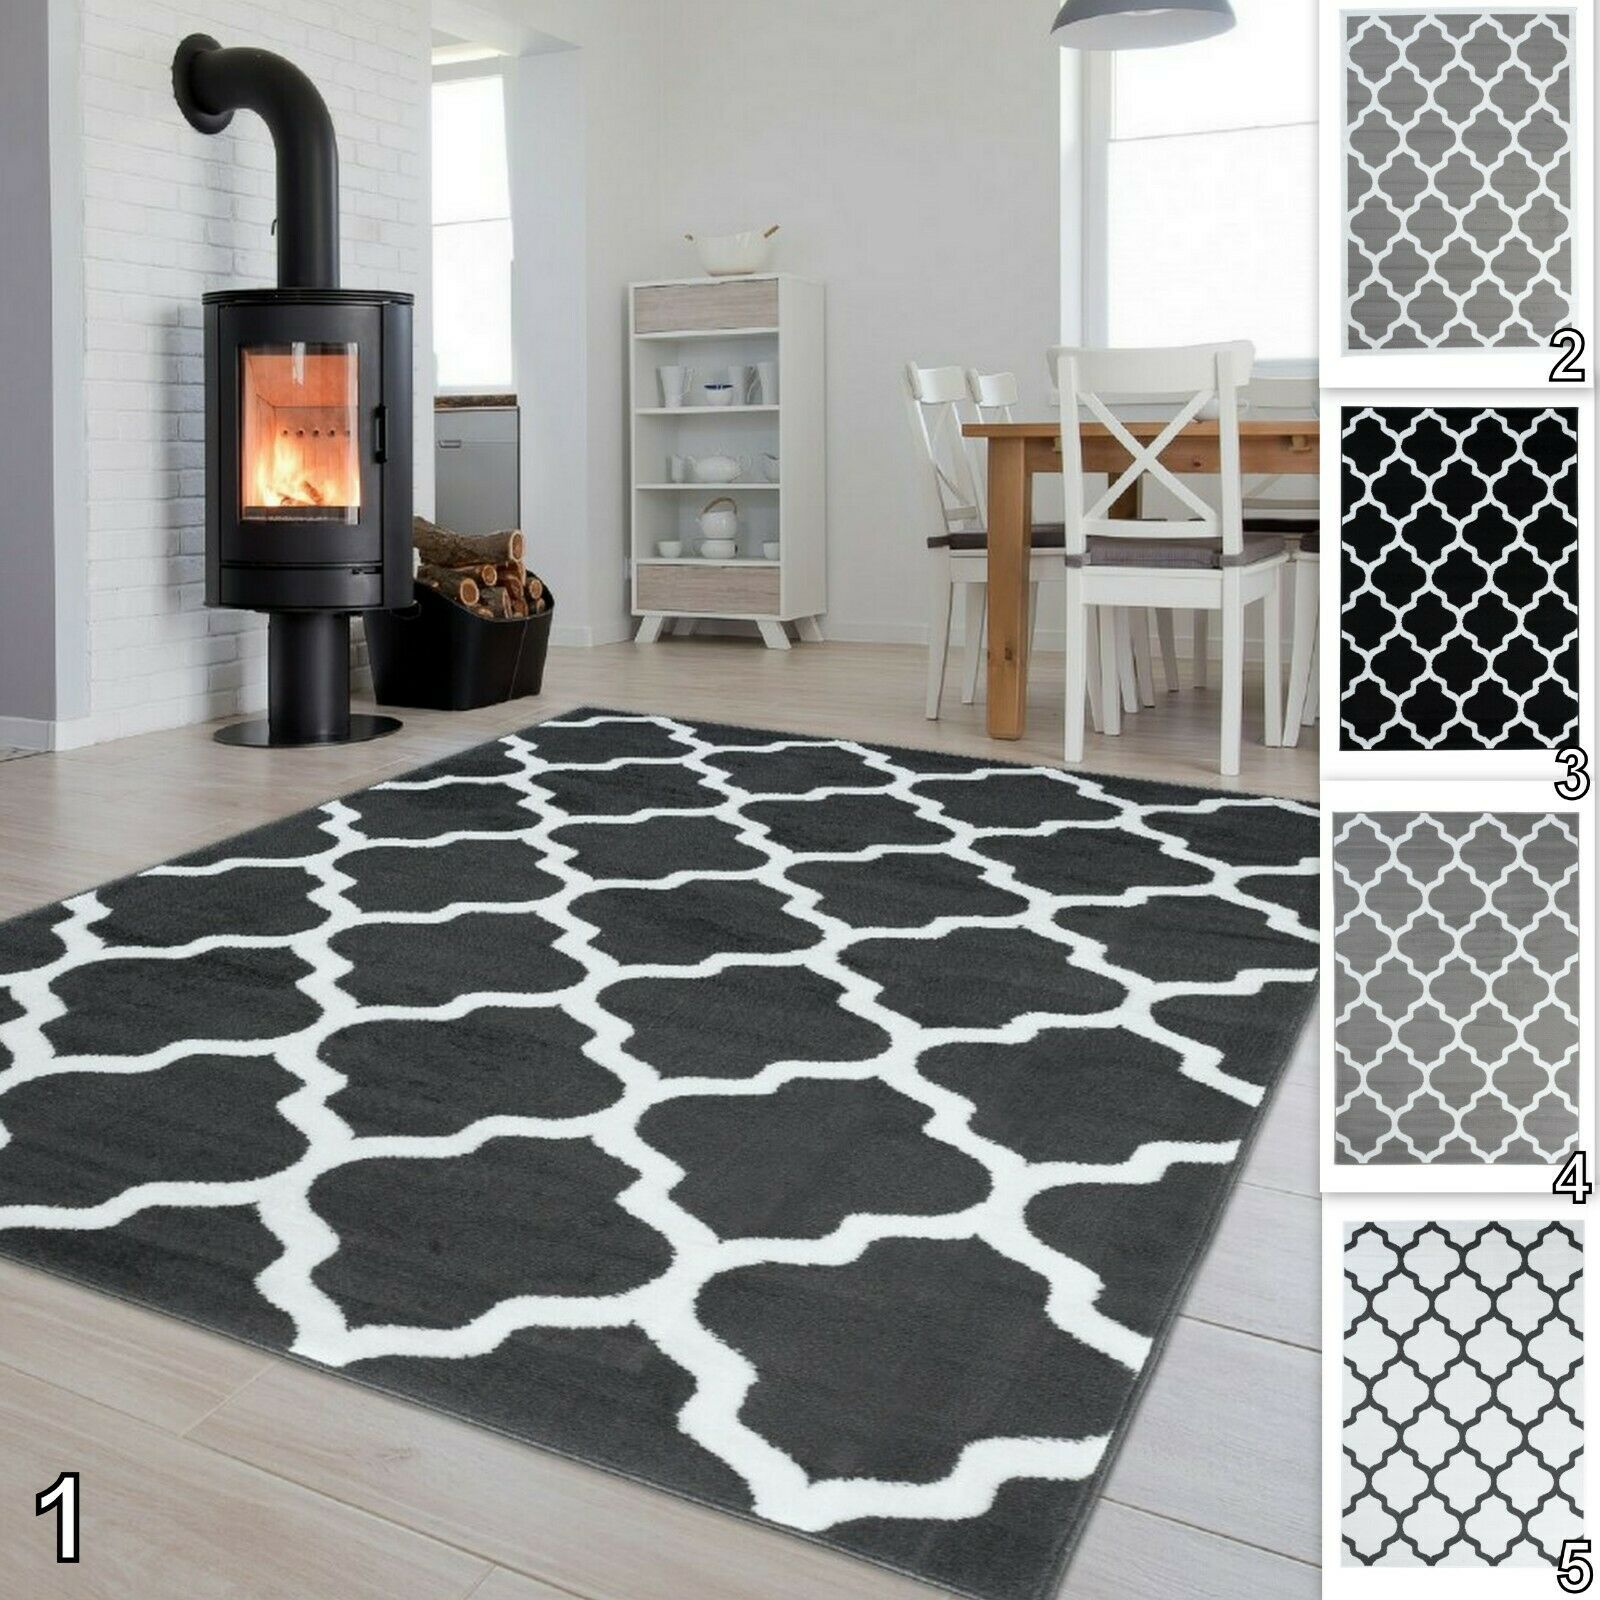 New Modern Geometric Trellis Grey Black White Rug Contemporary Carpet Soft Pile